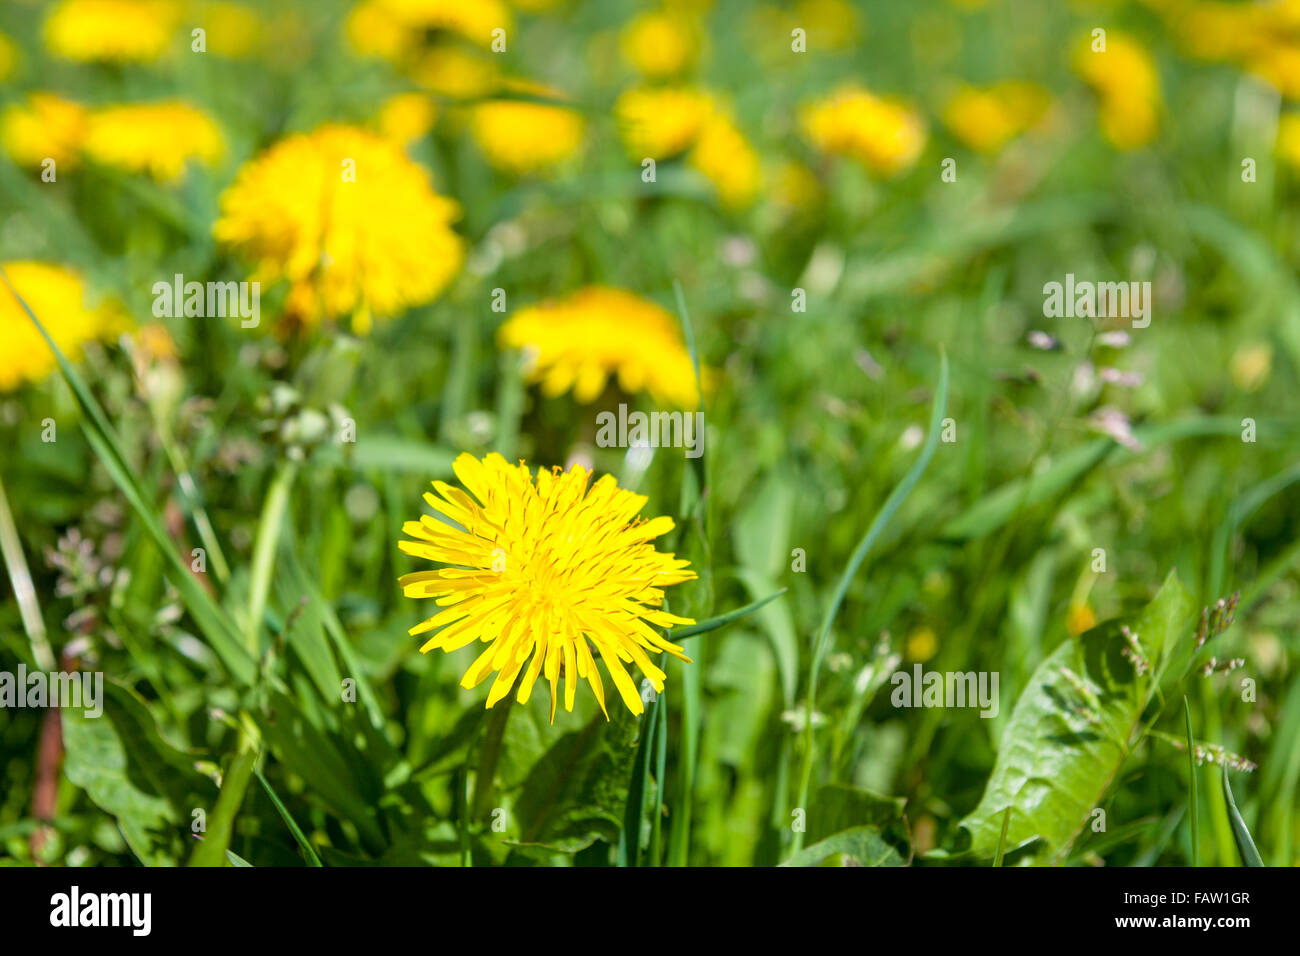 Dandelion (Taraxacum officinale), the common dandelion, is a flowering herbaceous perennial plant of the family - Stock Image